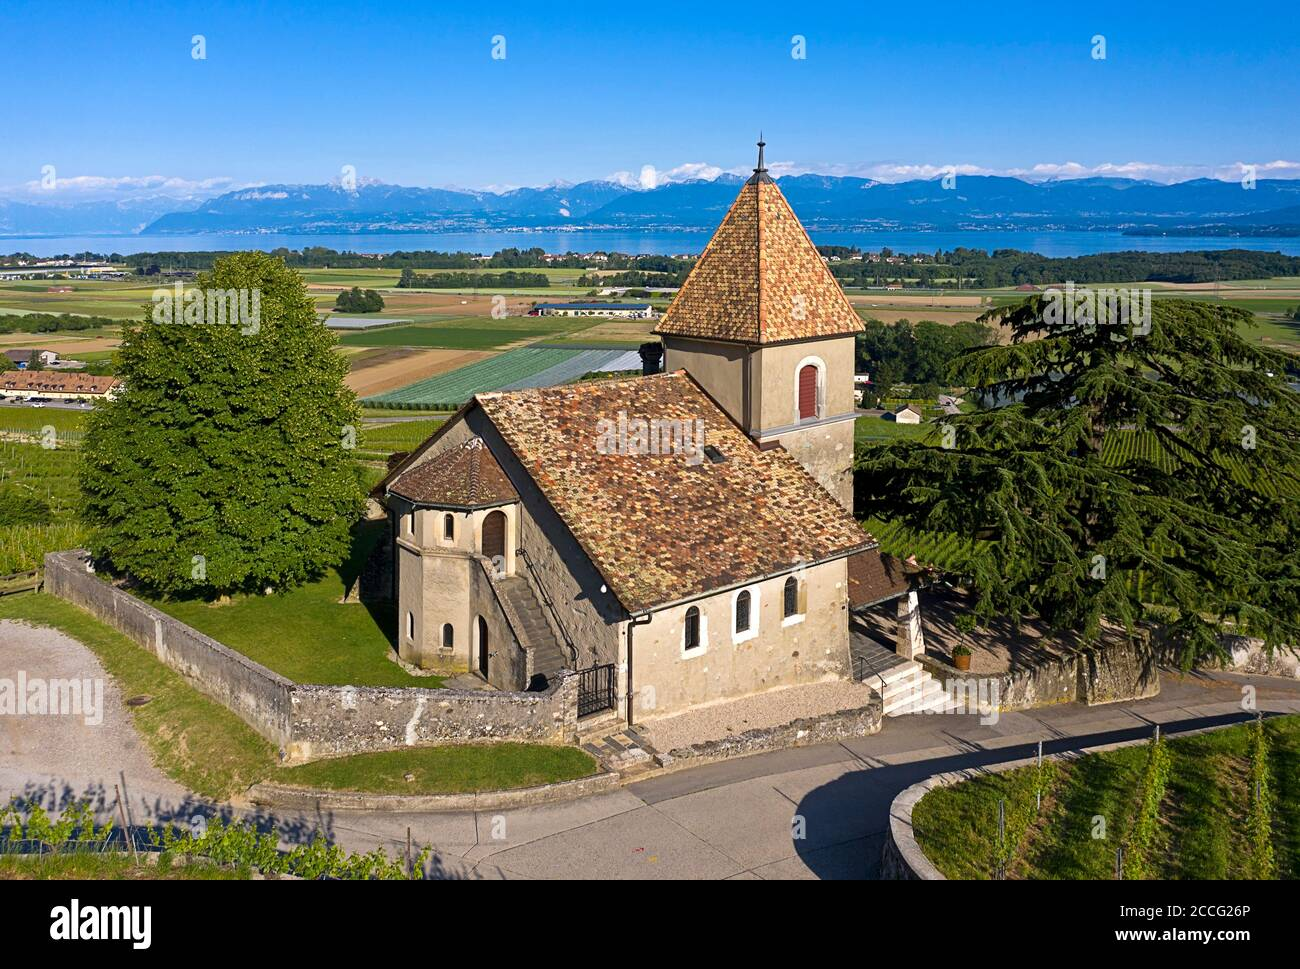 The church of La Sentinelle, the guardian, in the wine-growing region of La Côte on Lake Geneva, Luins, Vaud, Switzerland Stock Photo